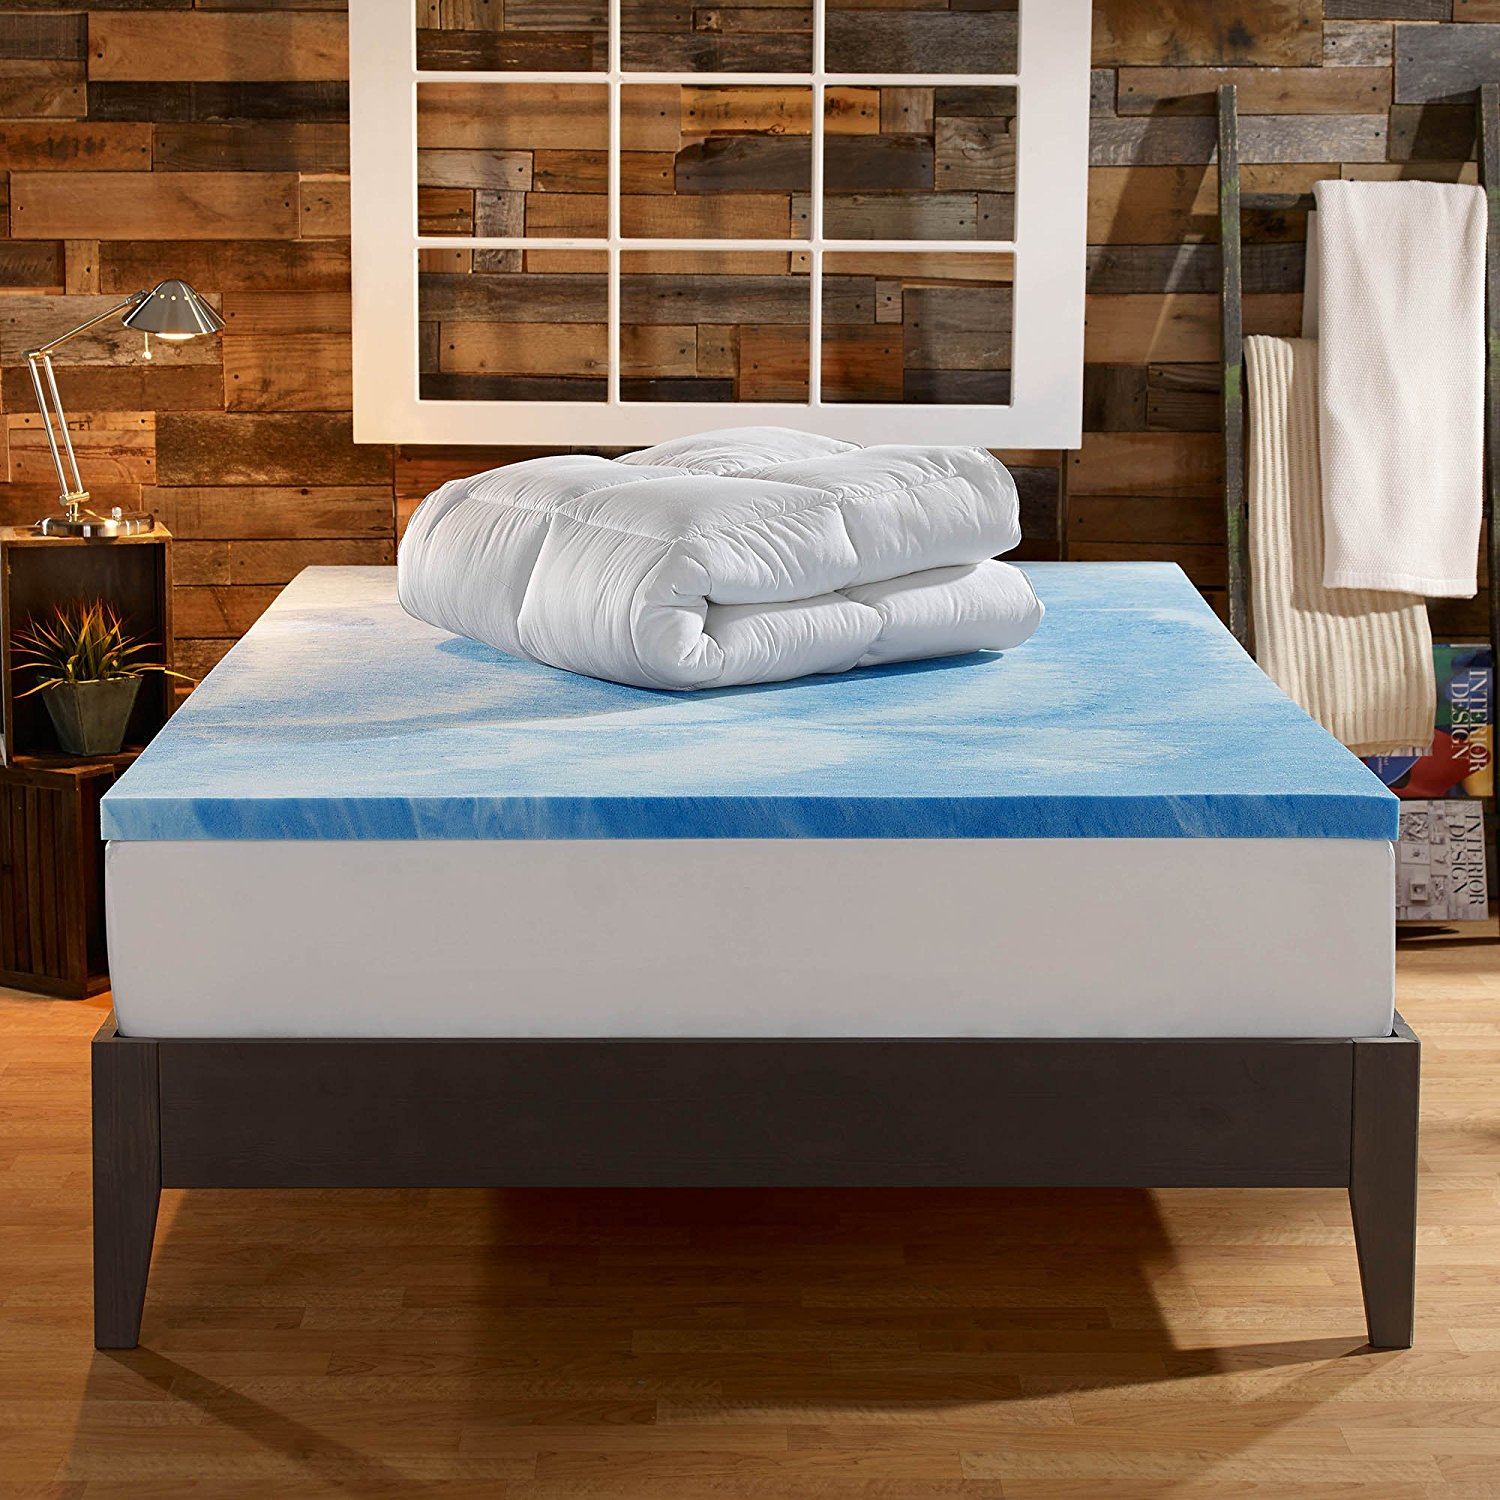 Best Foam Matress 6 Best Memory Foam Mattress Toppers 2019 Mfm Toppers Reviews